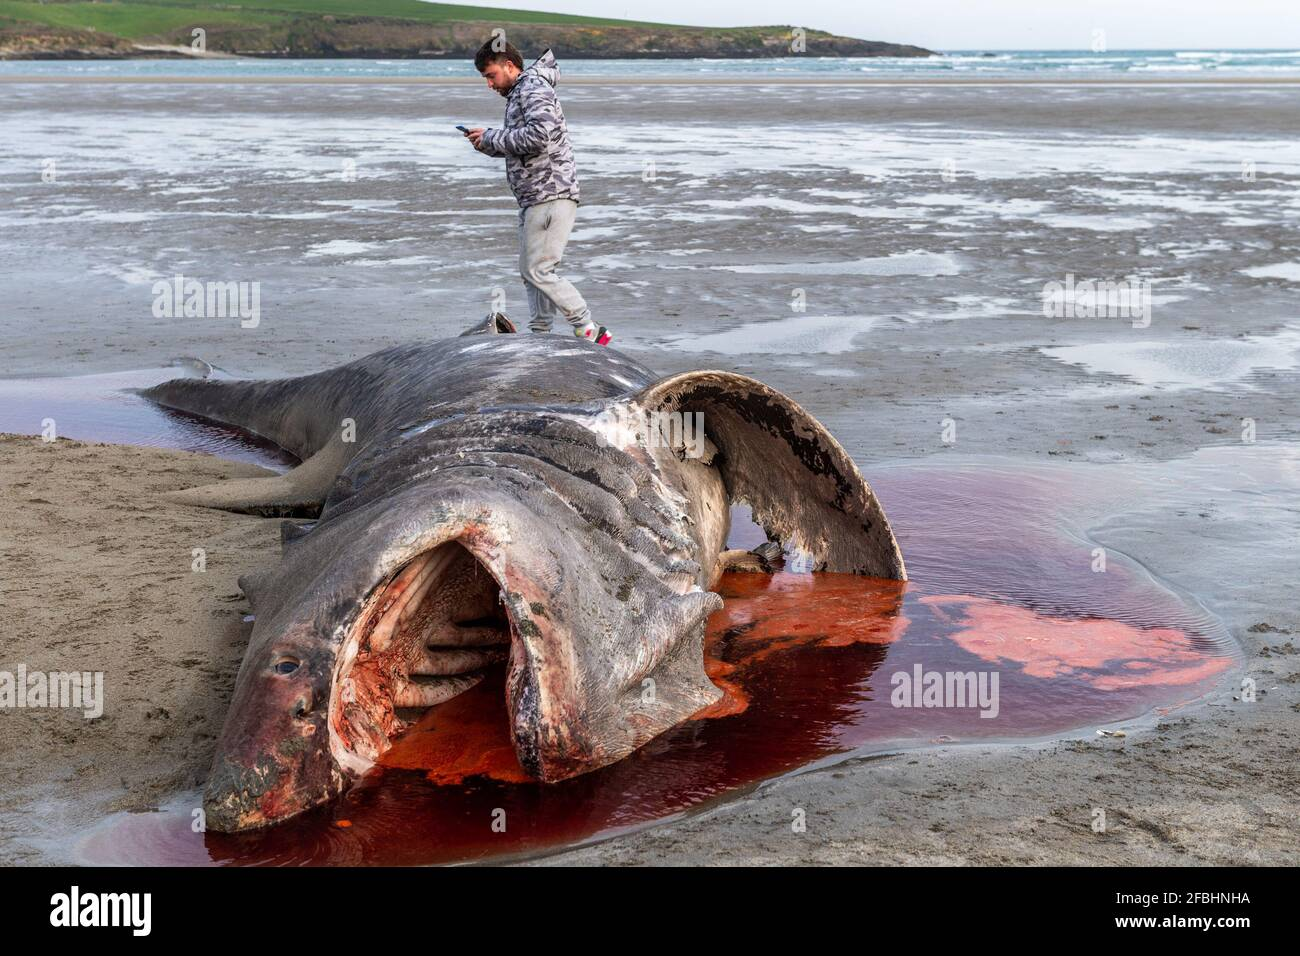 inchydoney-west-cork-ireland-23rd-apr-2021-a-basking-shark-cetorhinus-maximus-washed-up-on-inchydoney-beach-in-west-cork-this-evening-it-is-thought-to-be-one-of-two-sharks-which-have-been-sighted-off-the-west-cork-coast-in-the-last-few-days-the-shark-drew-a-crowd-of-both-locals-and-holiday-makers-to-view-the-dead-fish-credit-ag-newsalamy-live-news-2FBHNHA.jpg